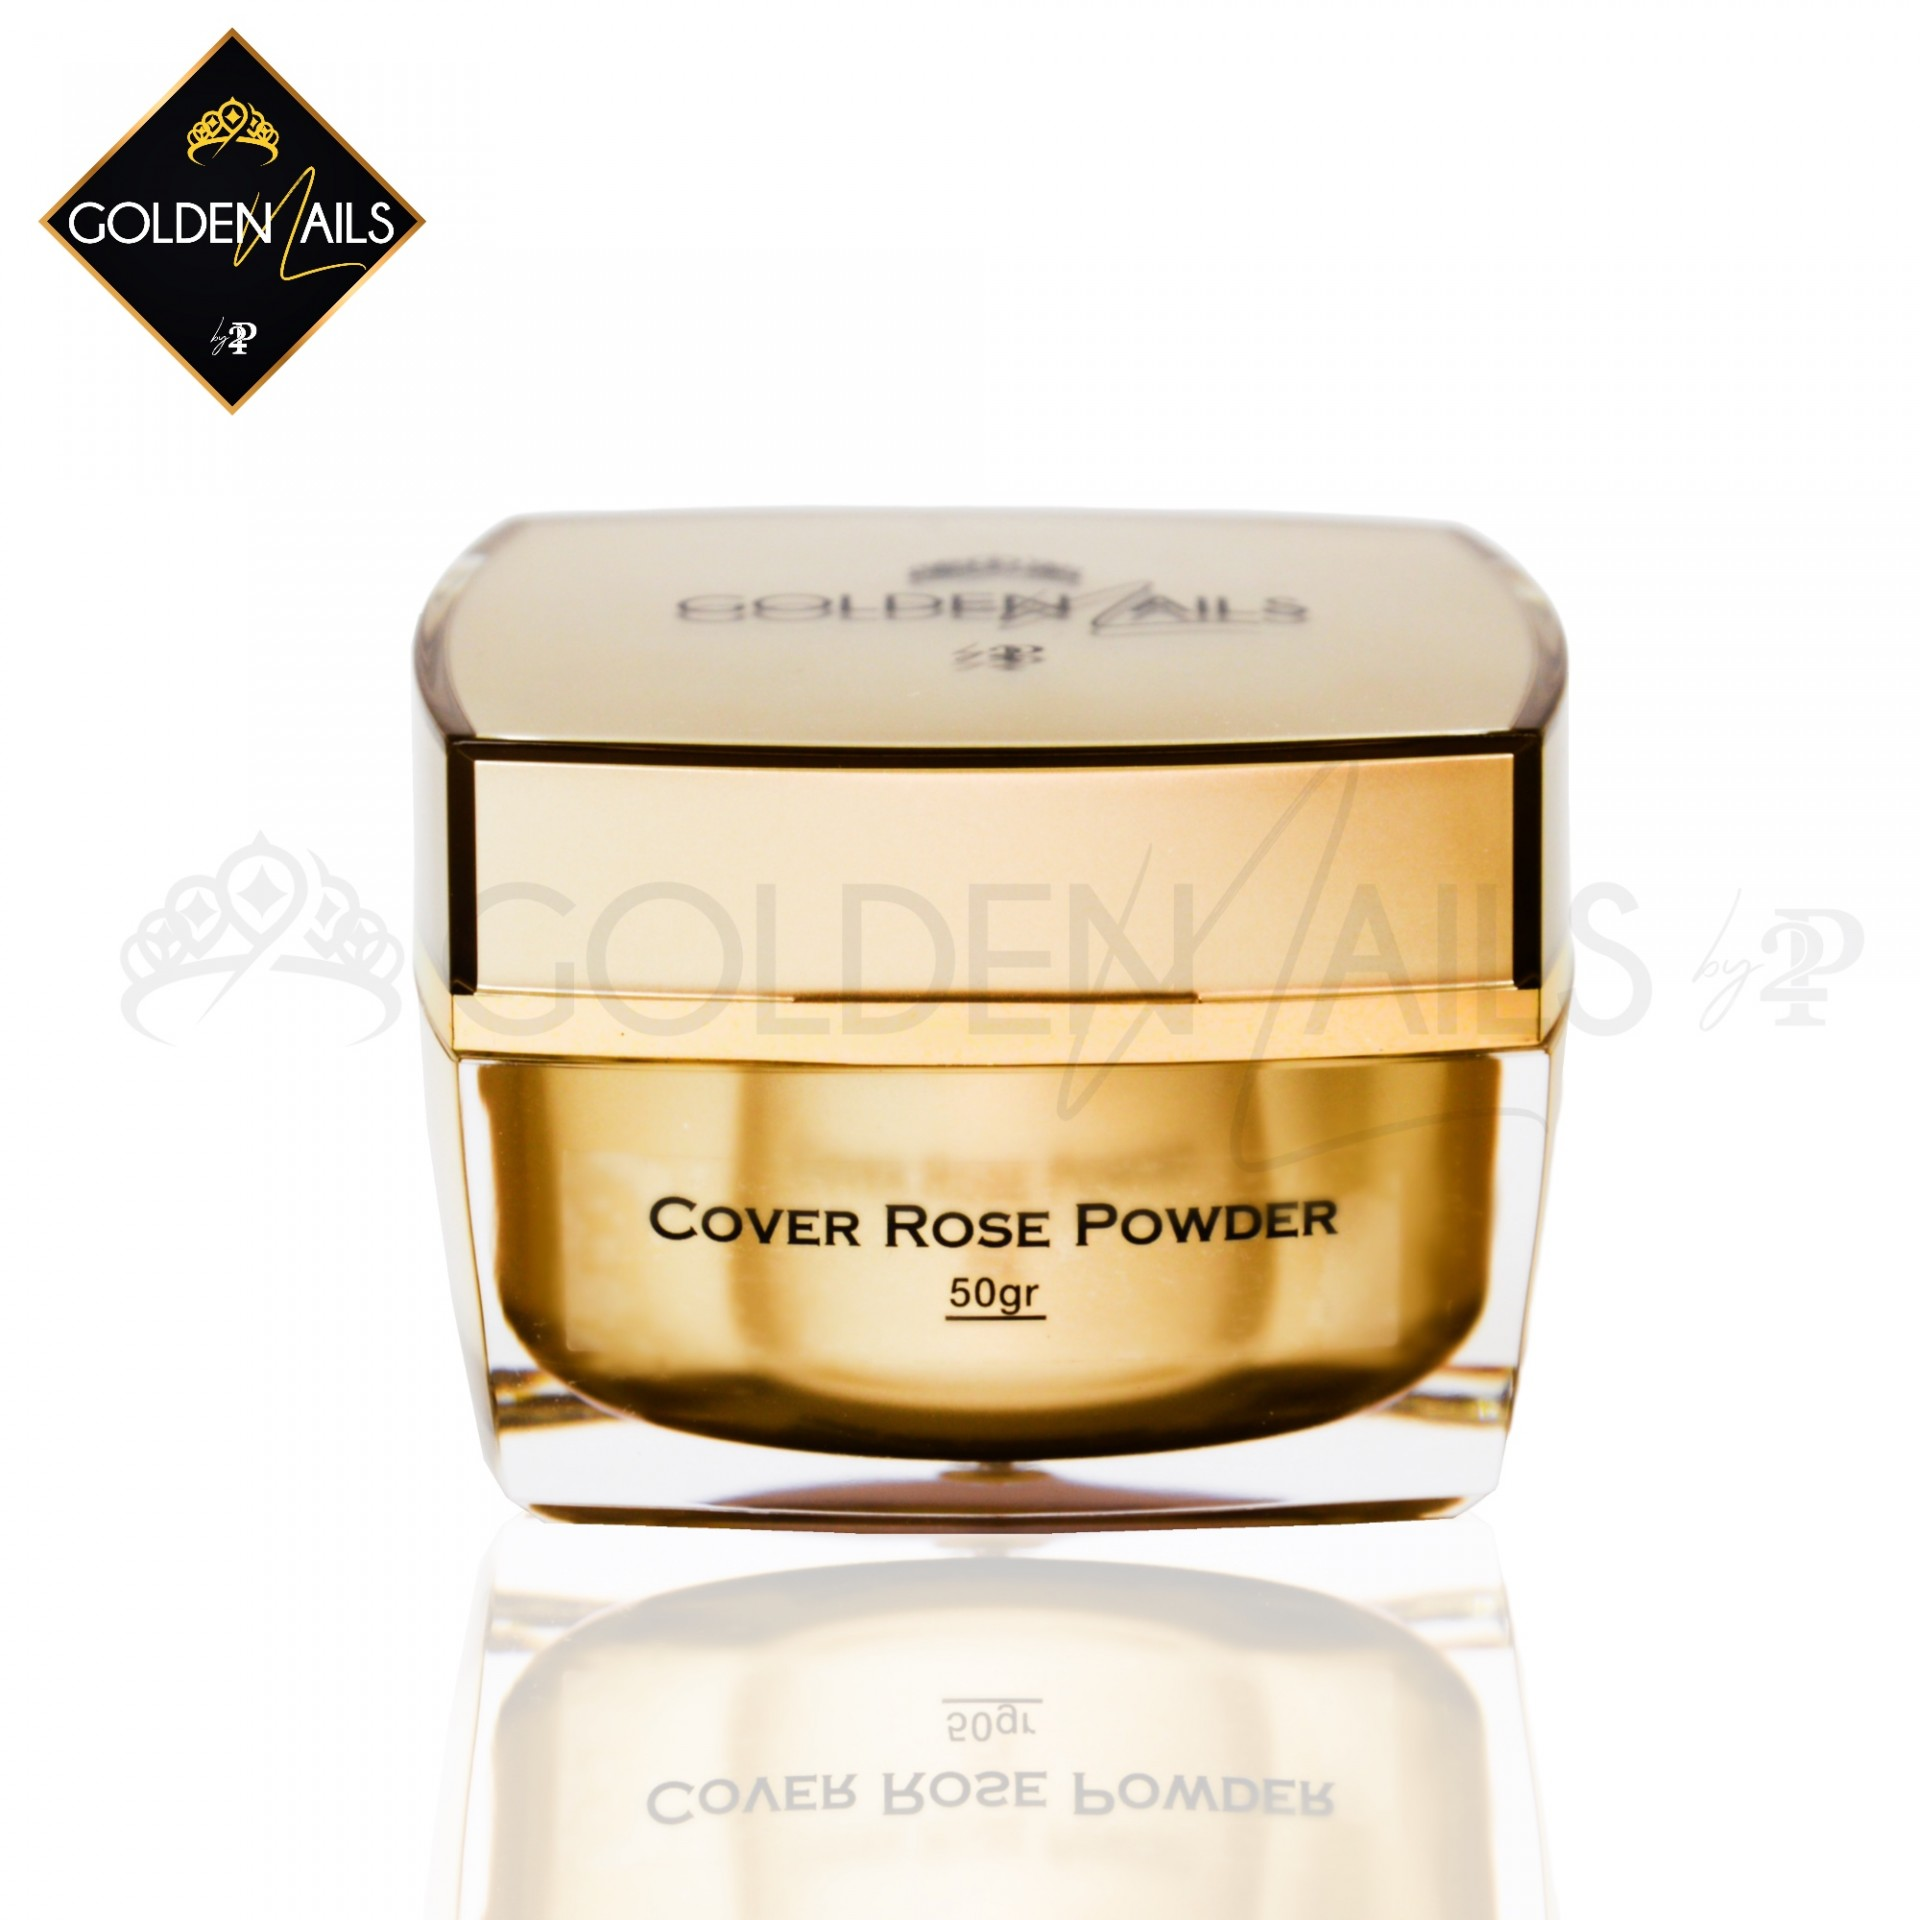 Psas Nails - GN COVER ROSE POWDER